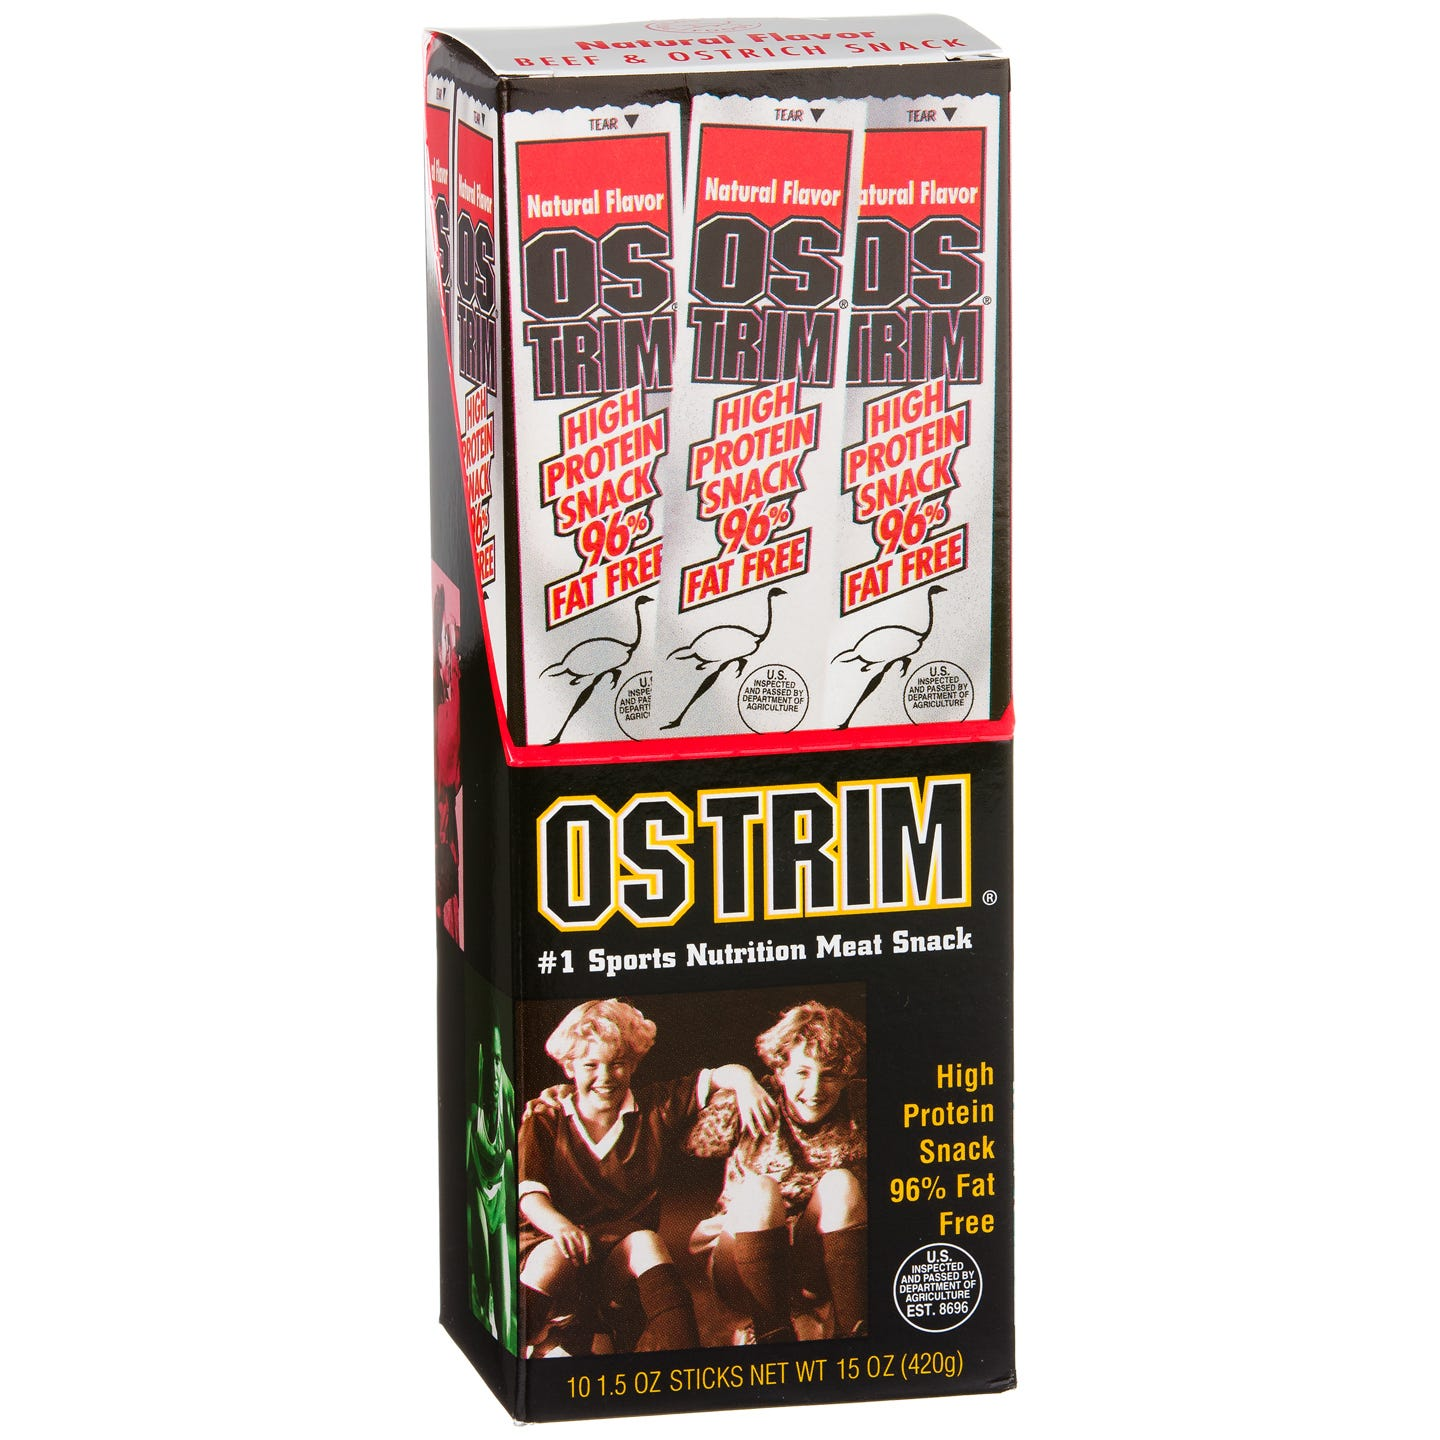 OSTRIM Meat Stick Snacks - Natural